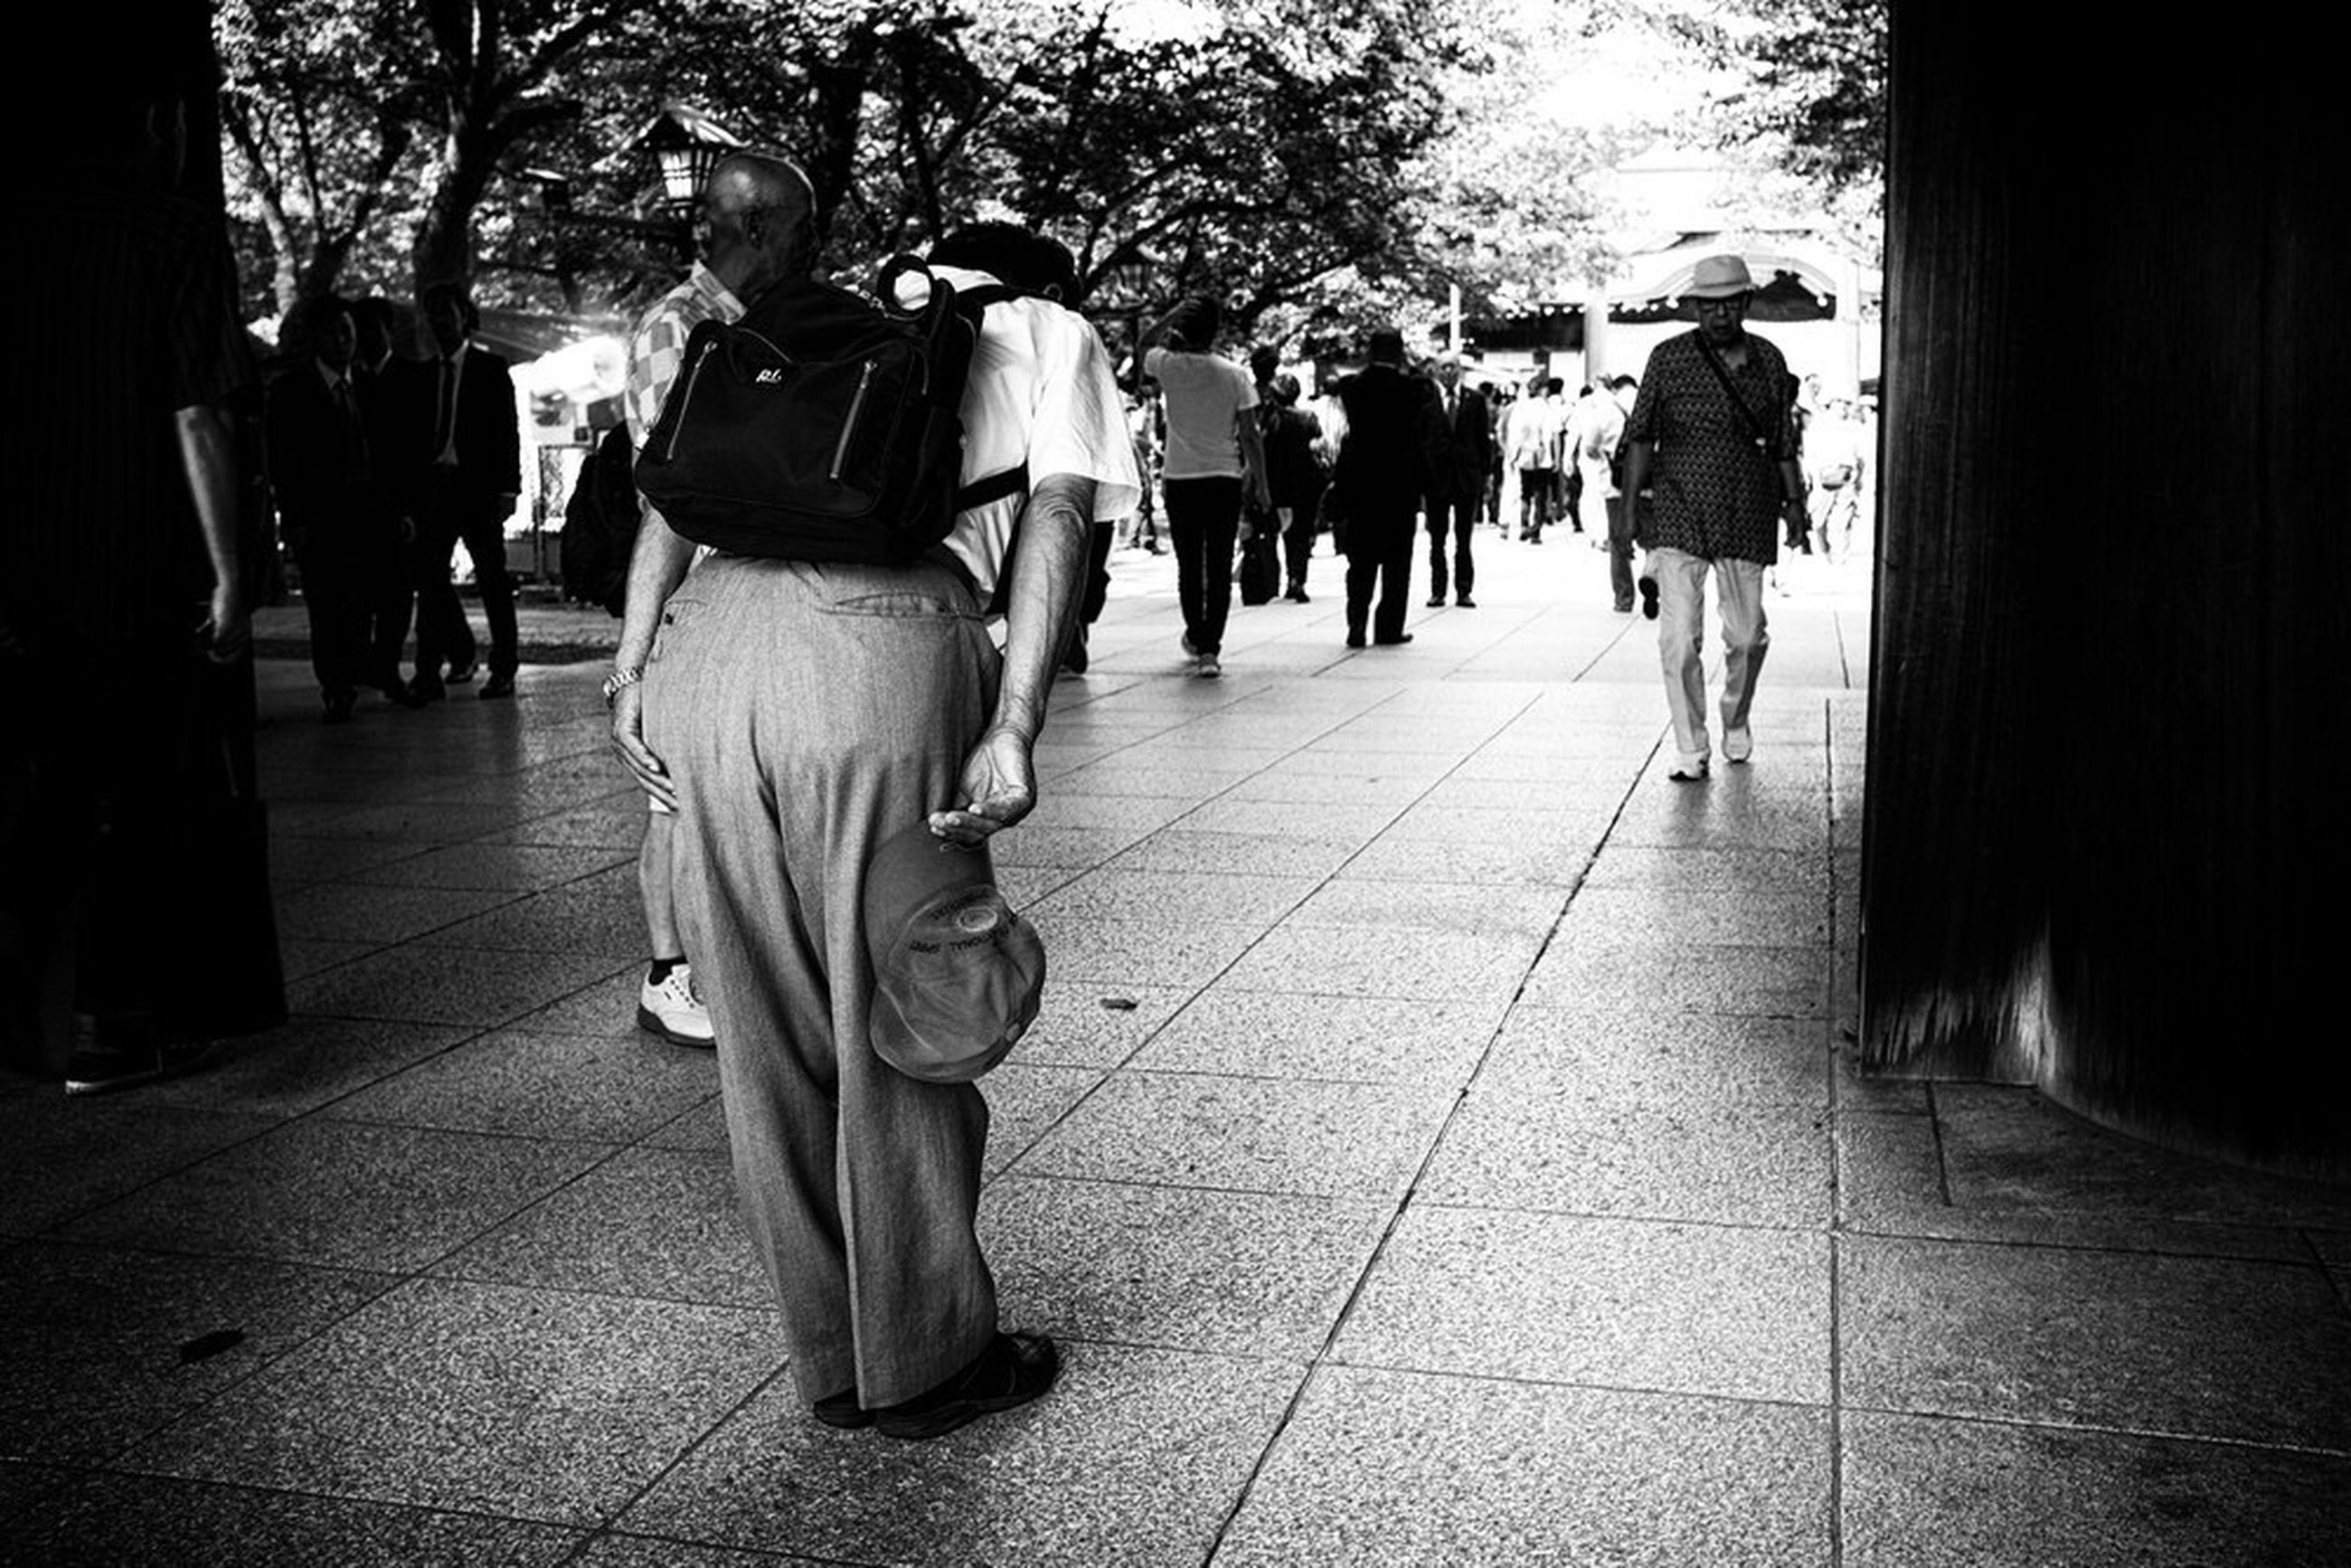 walking, real people, rear view, city, group of people, street, footpath, tree, women, lifestyles, men, people, direction, plant, incidental people, full length, adult, the way forward, architecture, paving stone, tiled floor